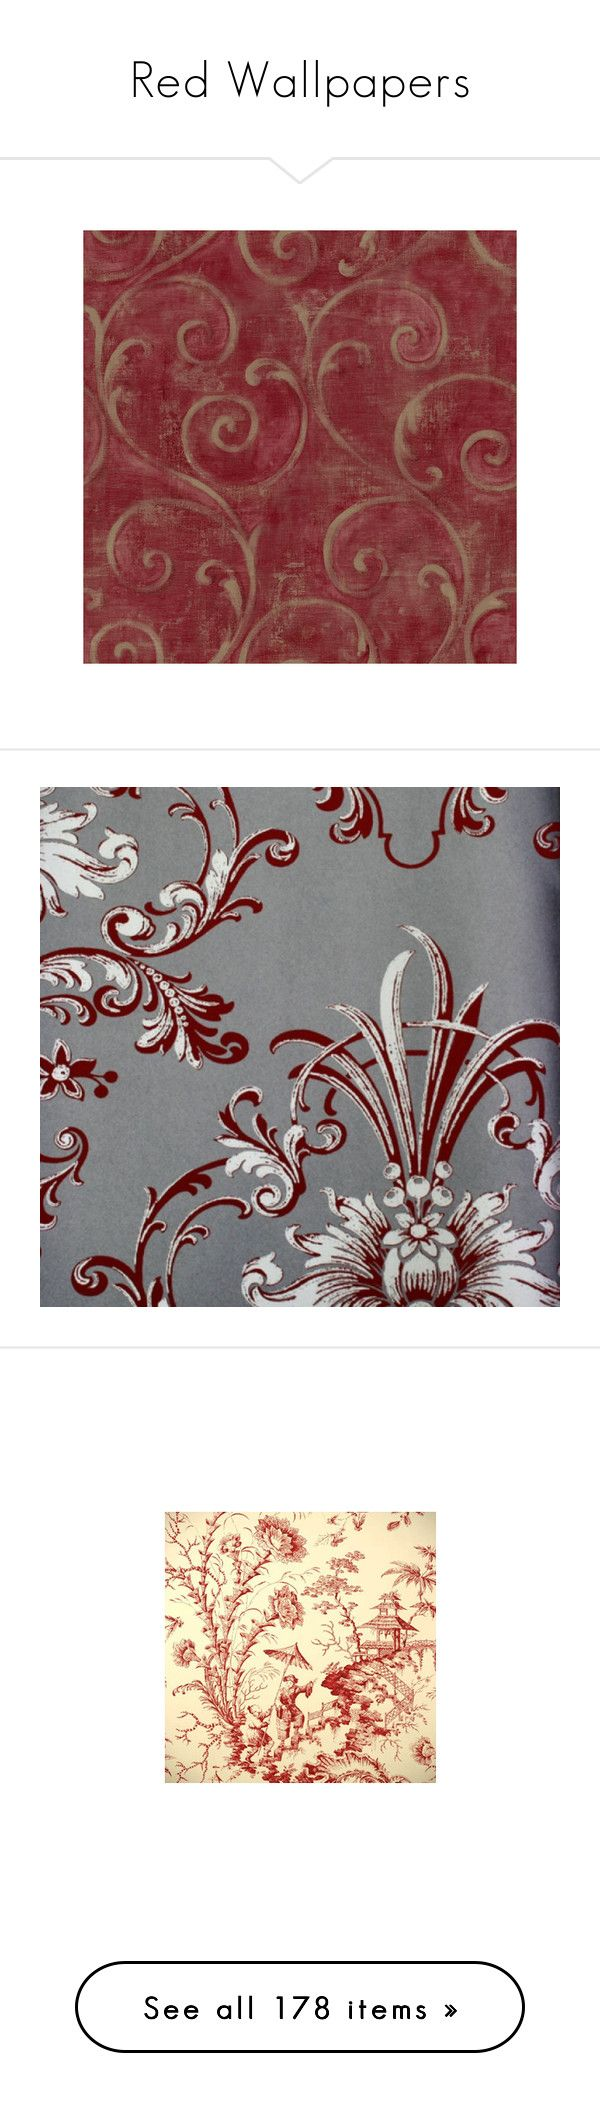 """Red Wallpapers"" by lailoooo ❤ liked on Polyvore featuring backgrounds, home, home decor, wallpaper, red wallpaper, american home decor, painted wallpaper, red textured wallpaper, york wallcoverings and dark red wallpaper"